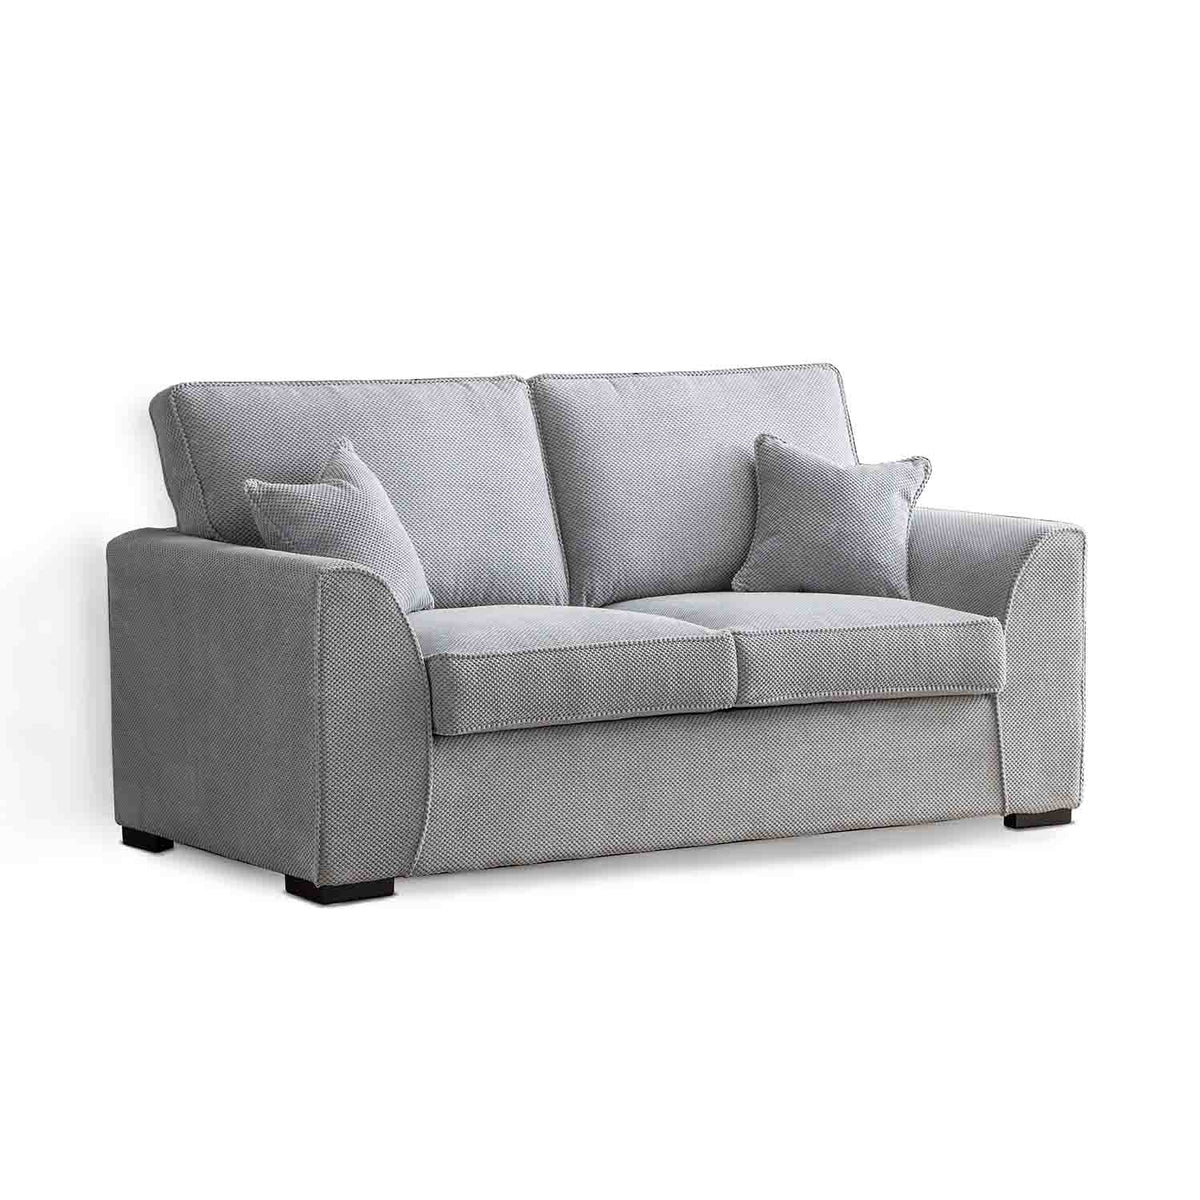 Dallas Silver 2 Seater Sofa by Roseland Furniture